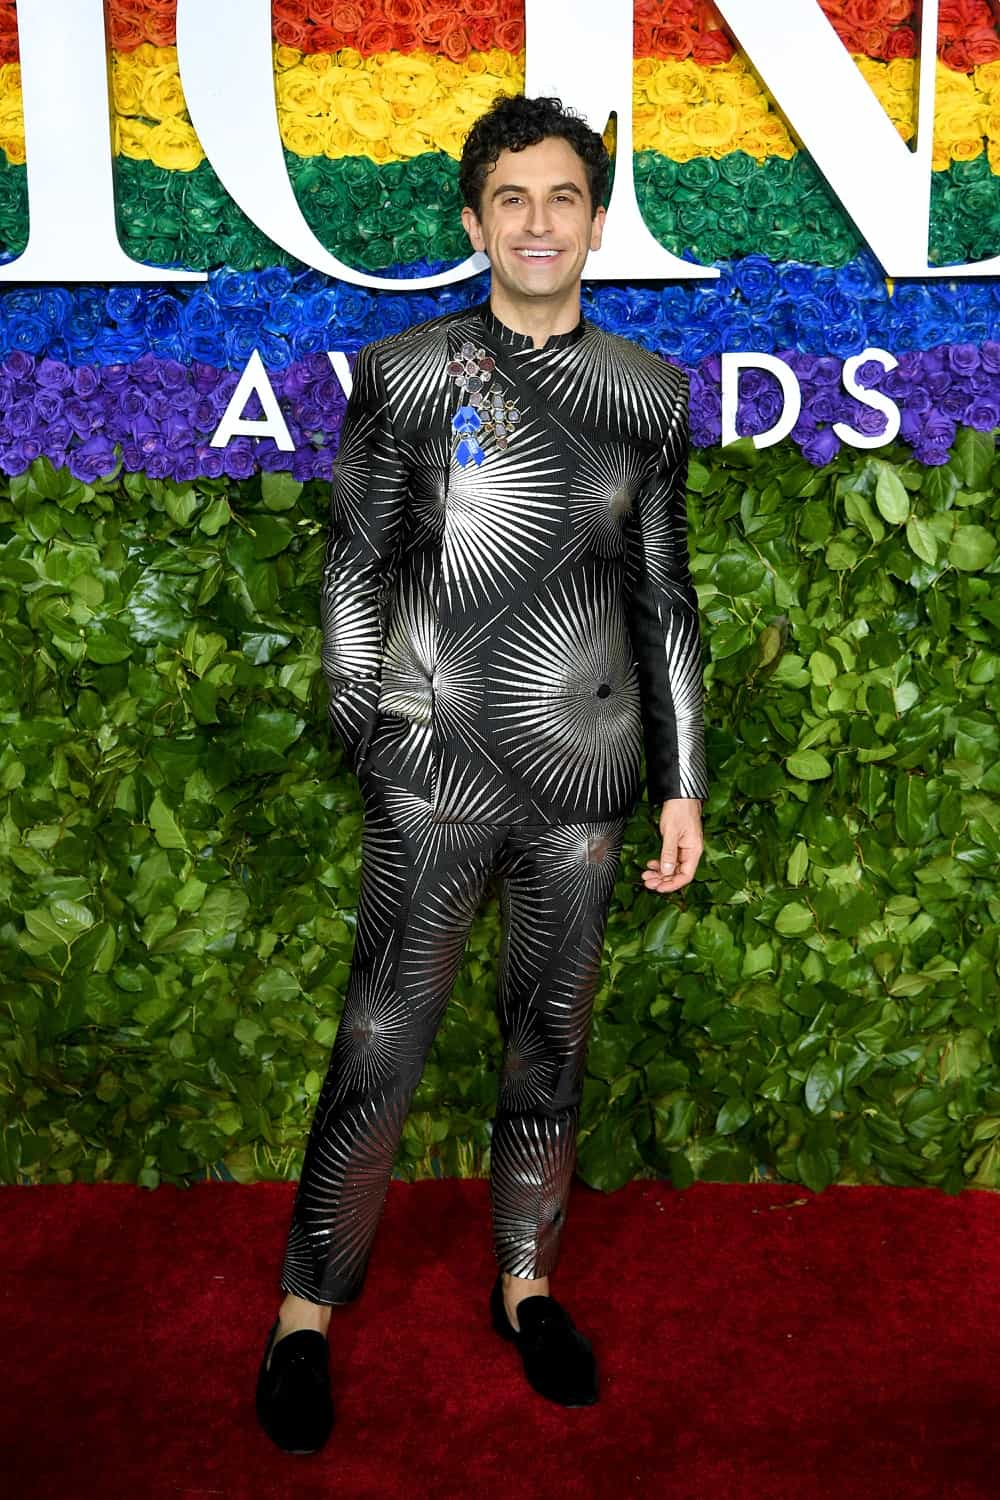 73rd Annual Tony Awards - Red Carpet